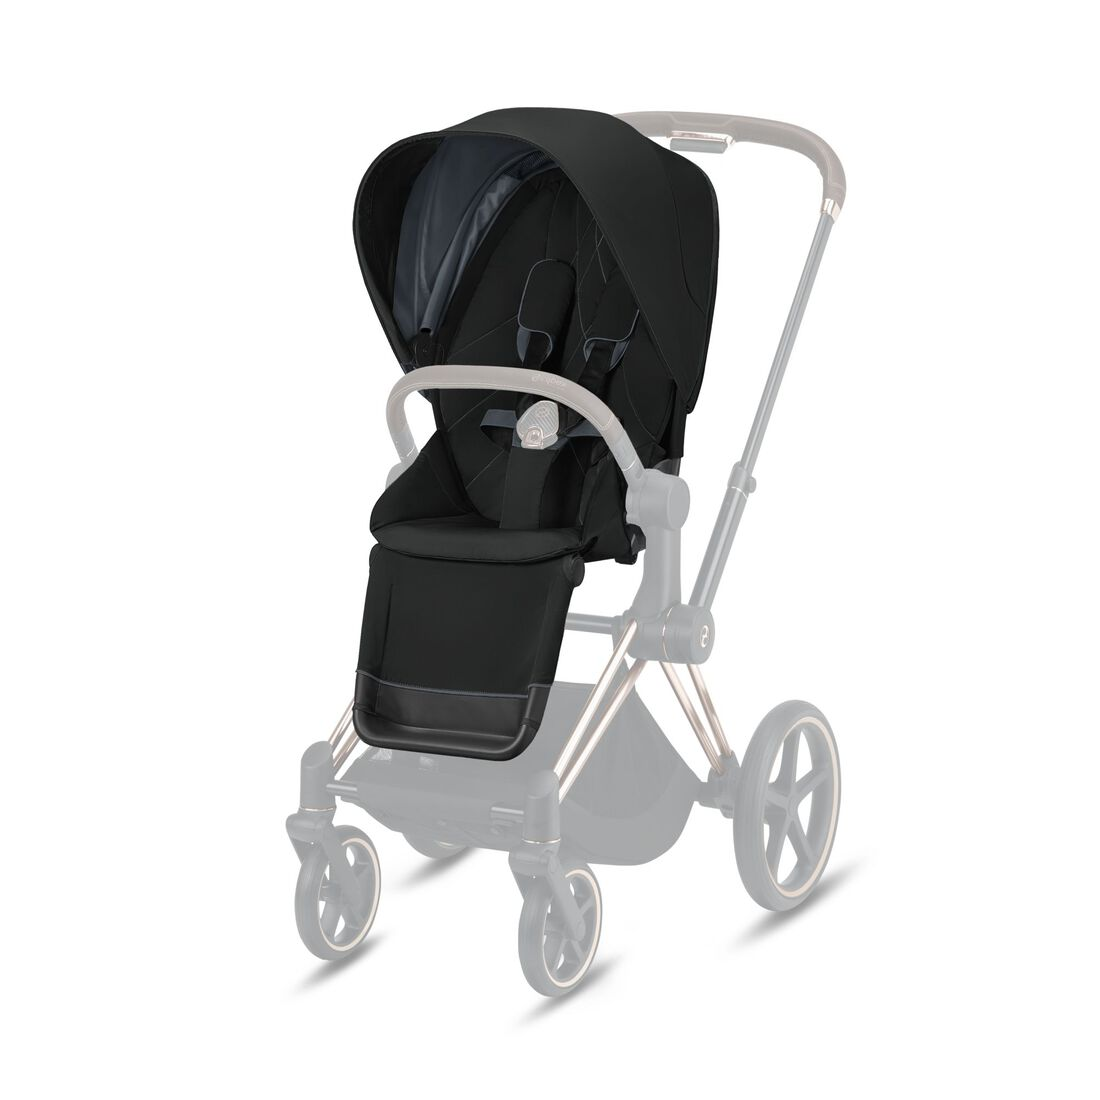 CYBEX Konfiguration e-Priam Set: Rahmen, Sitzpaket, Lite Cot in  large Bild 5